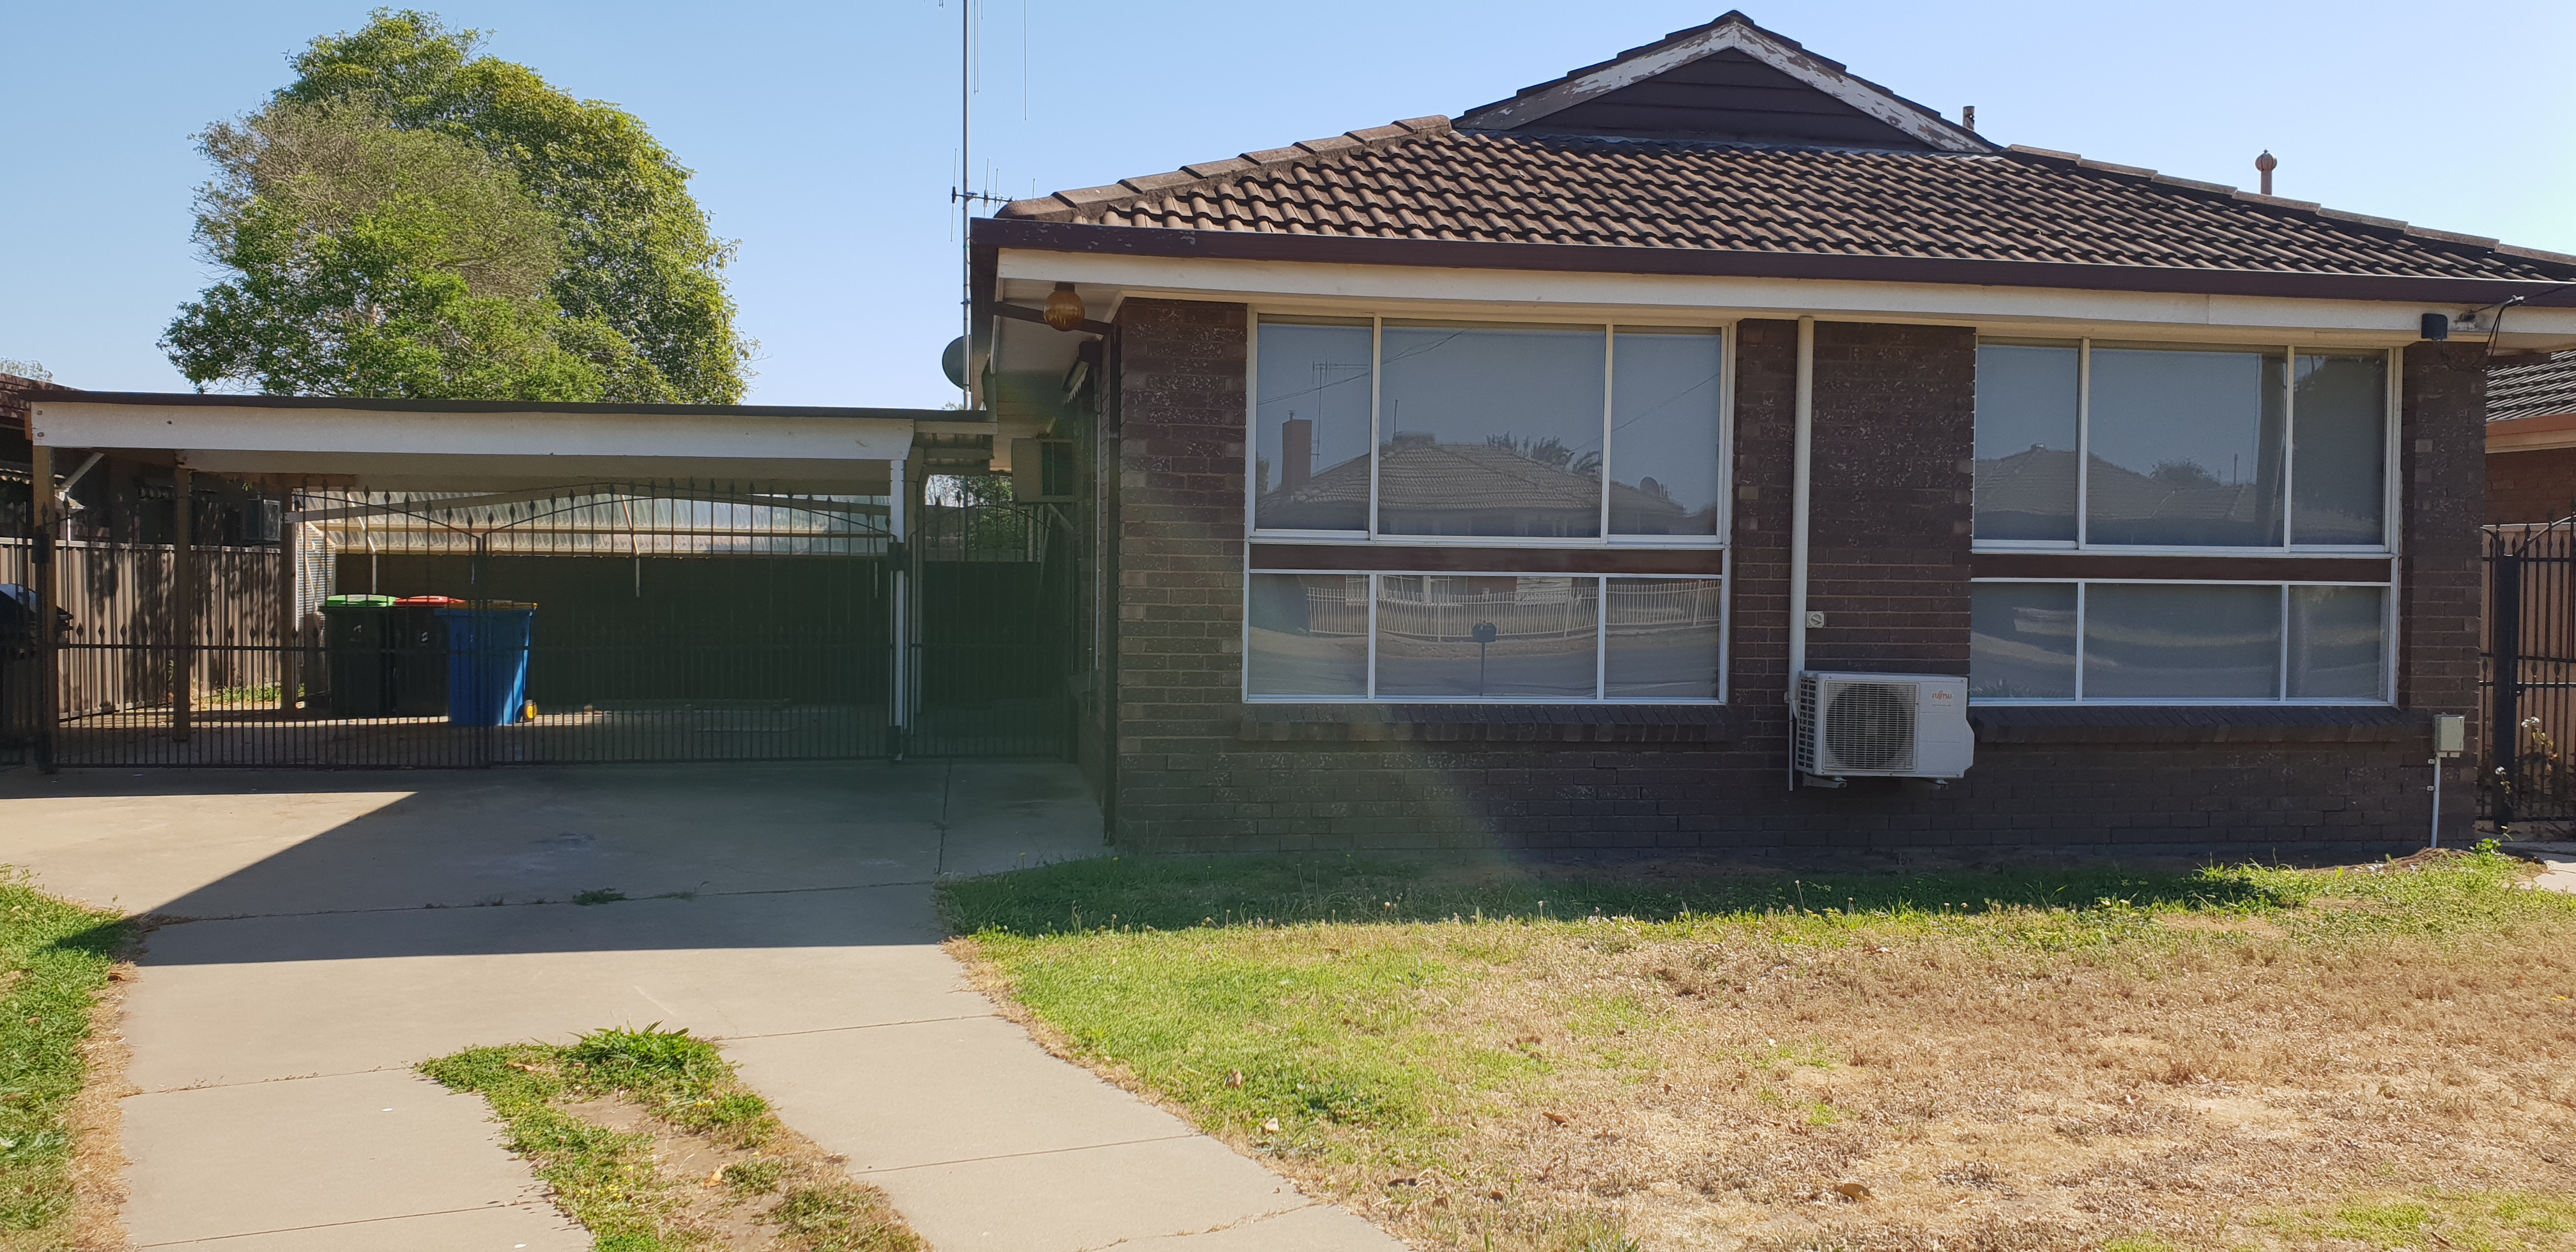 3 BEDROOM HOME IN SOUTH SHEPPARTON